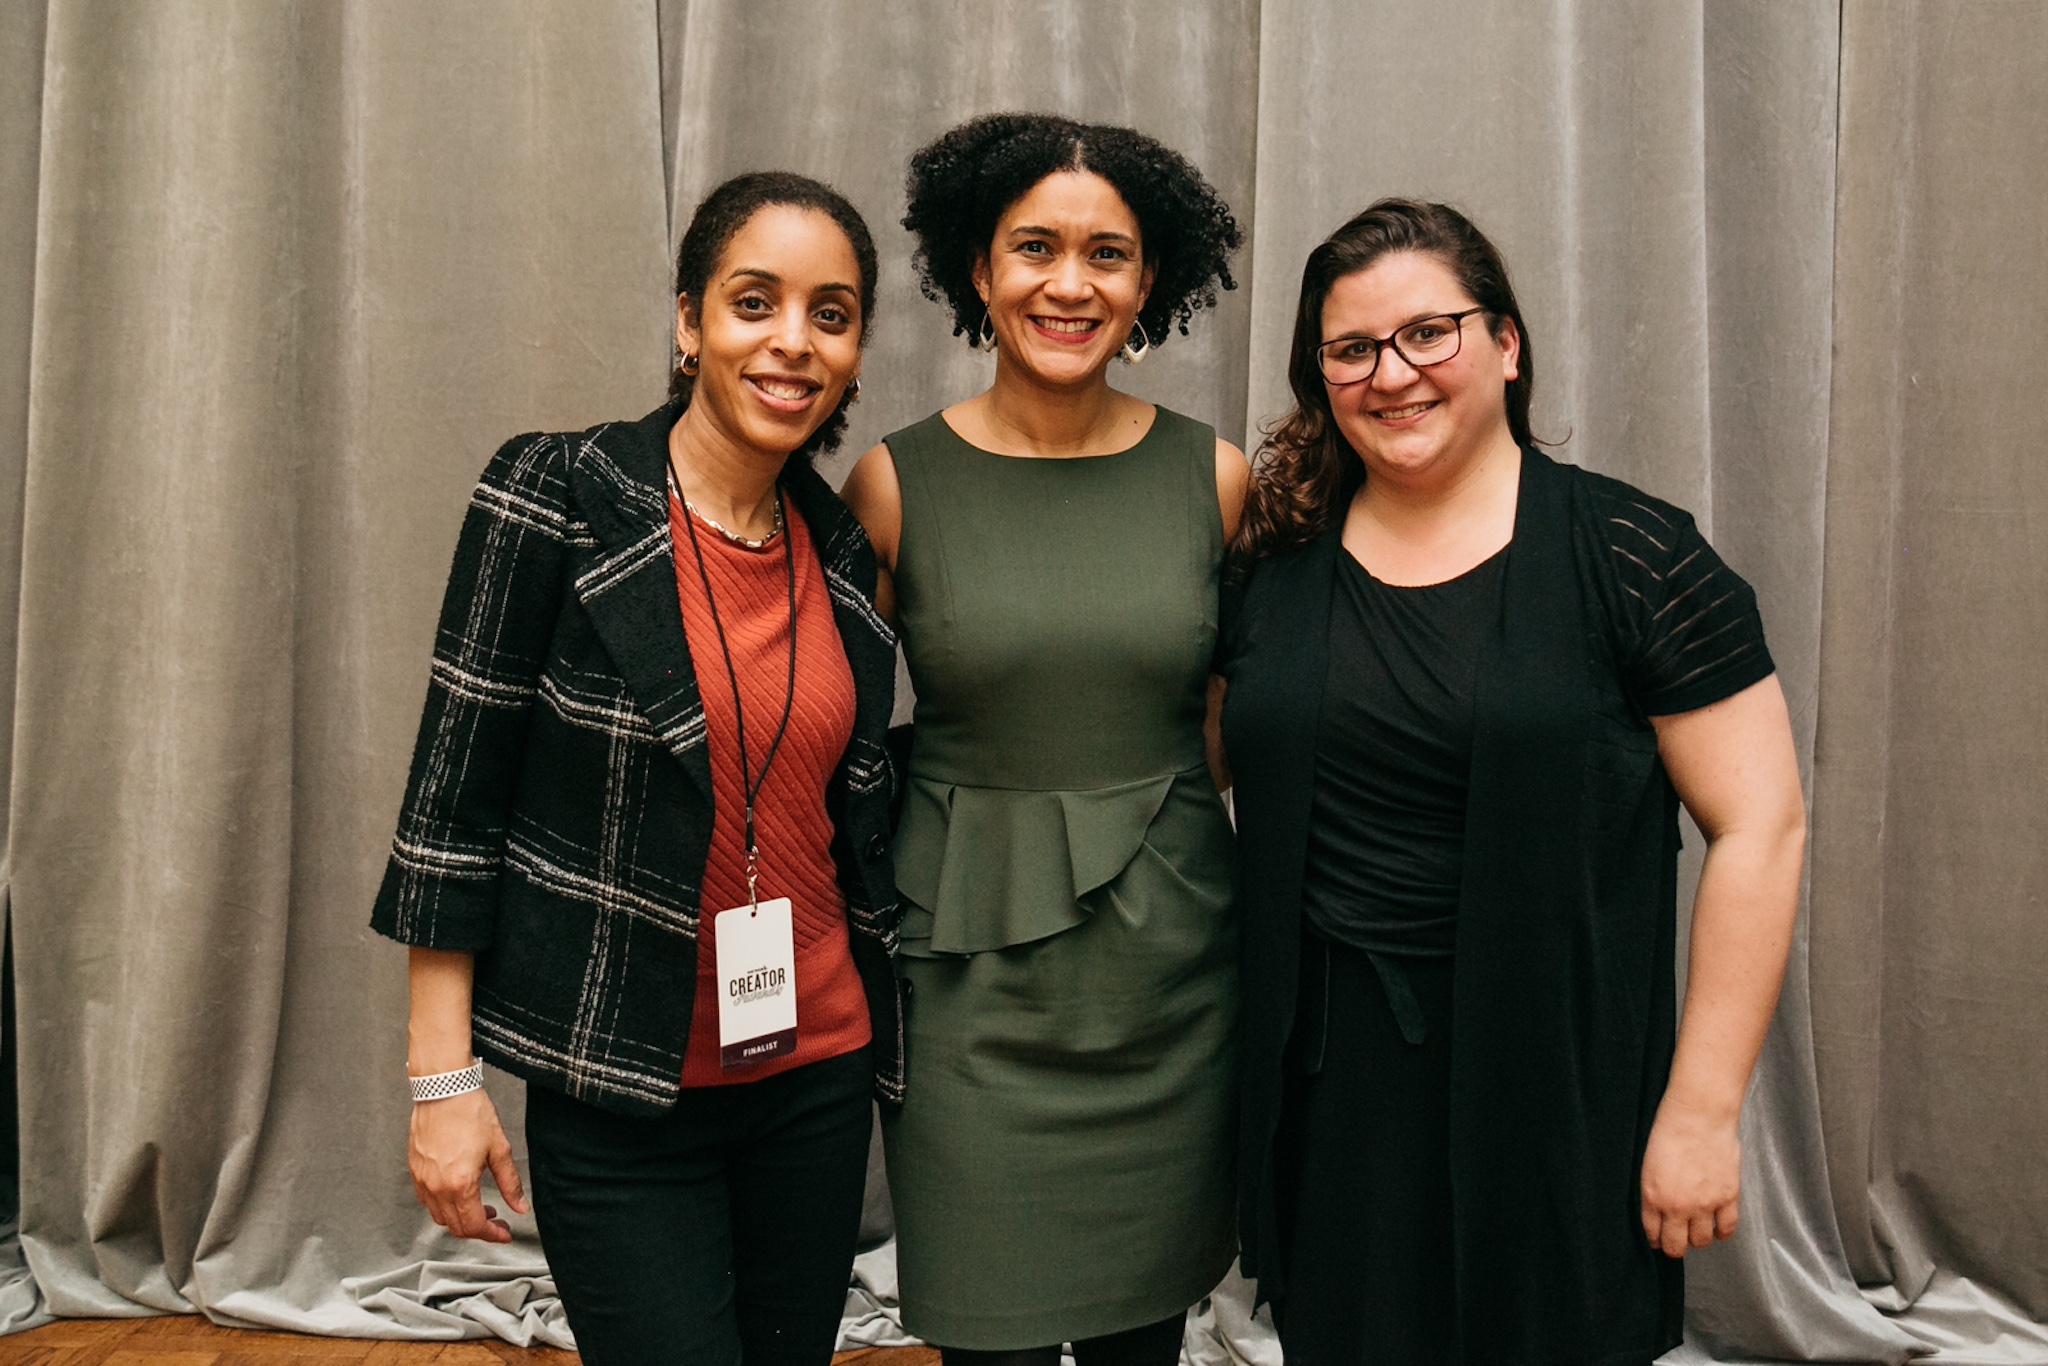 Kellee James of Mercaris, Elizabeth Lindsey of Byte Back, and Cristi Hegranes of Global Press Institute took home the top prizes at the Creator Awards.